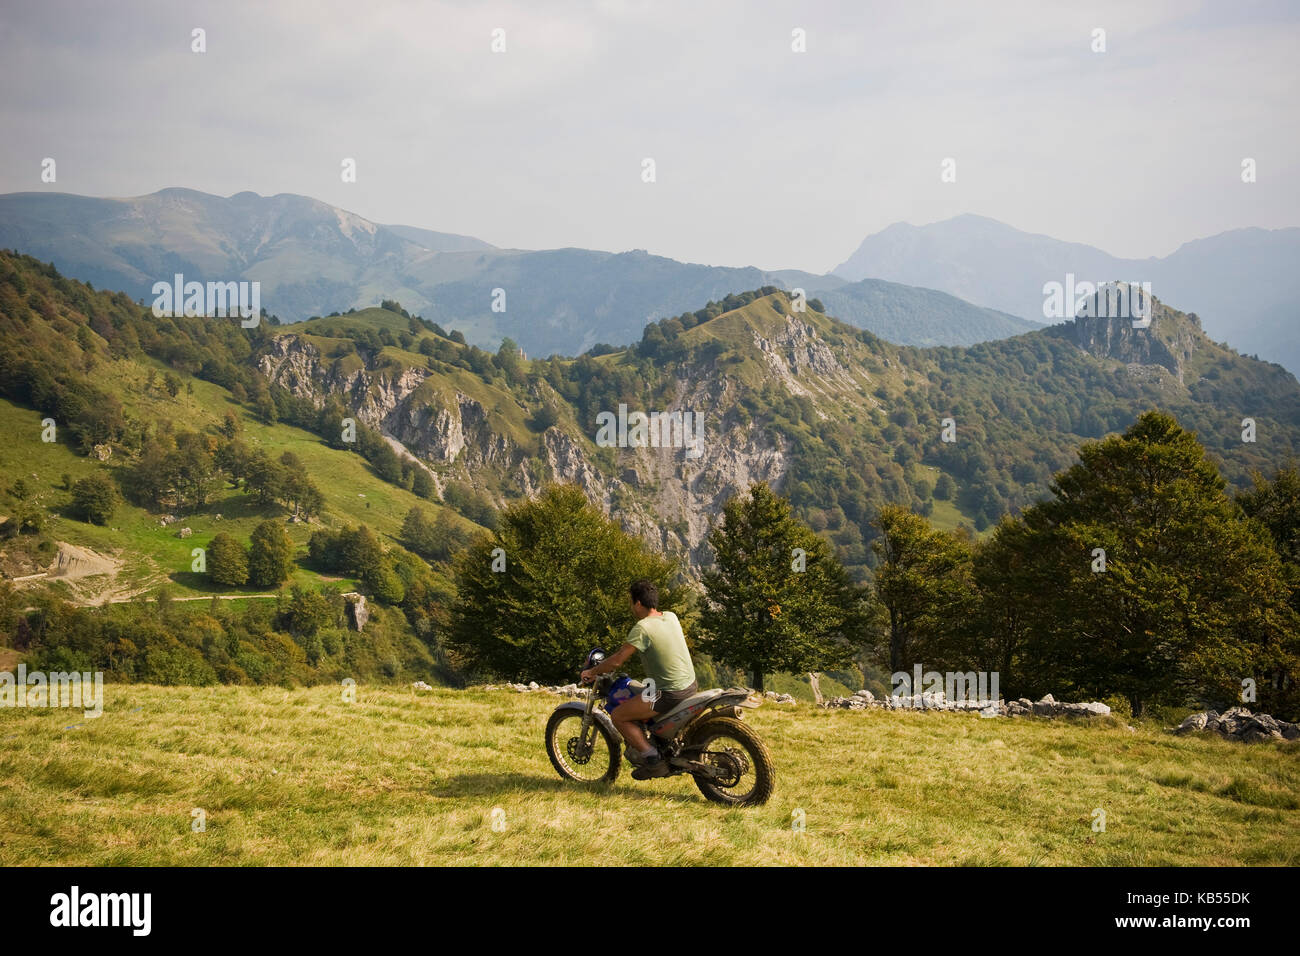 Farmer and cattle breeder, Taleggio valley, Lombardy, Italy - Stock Image